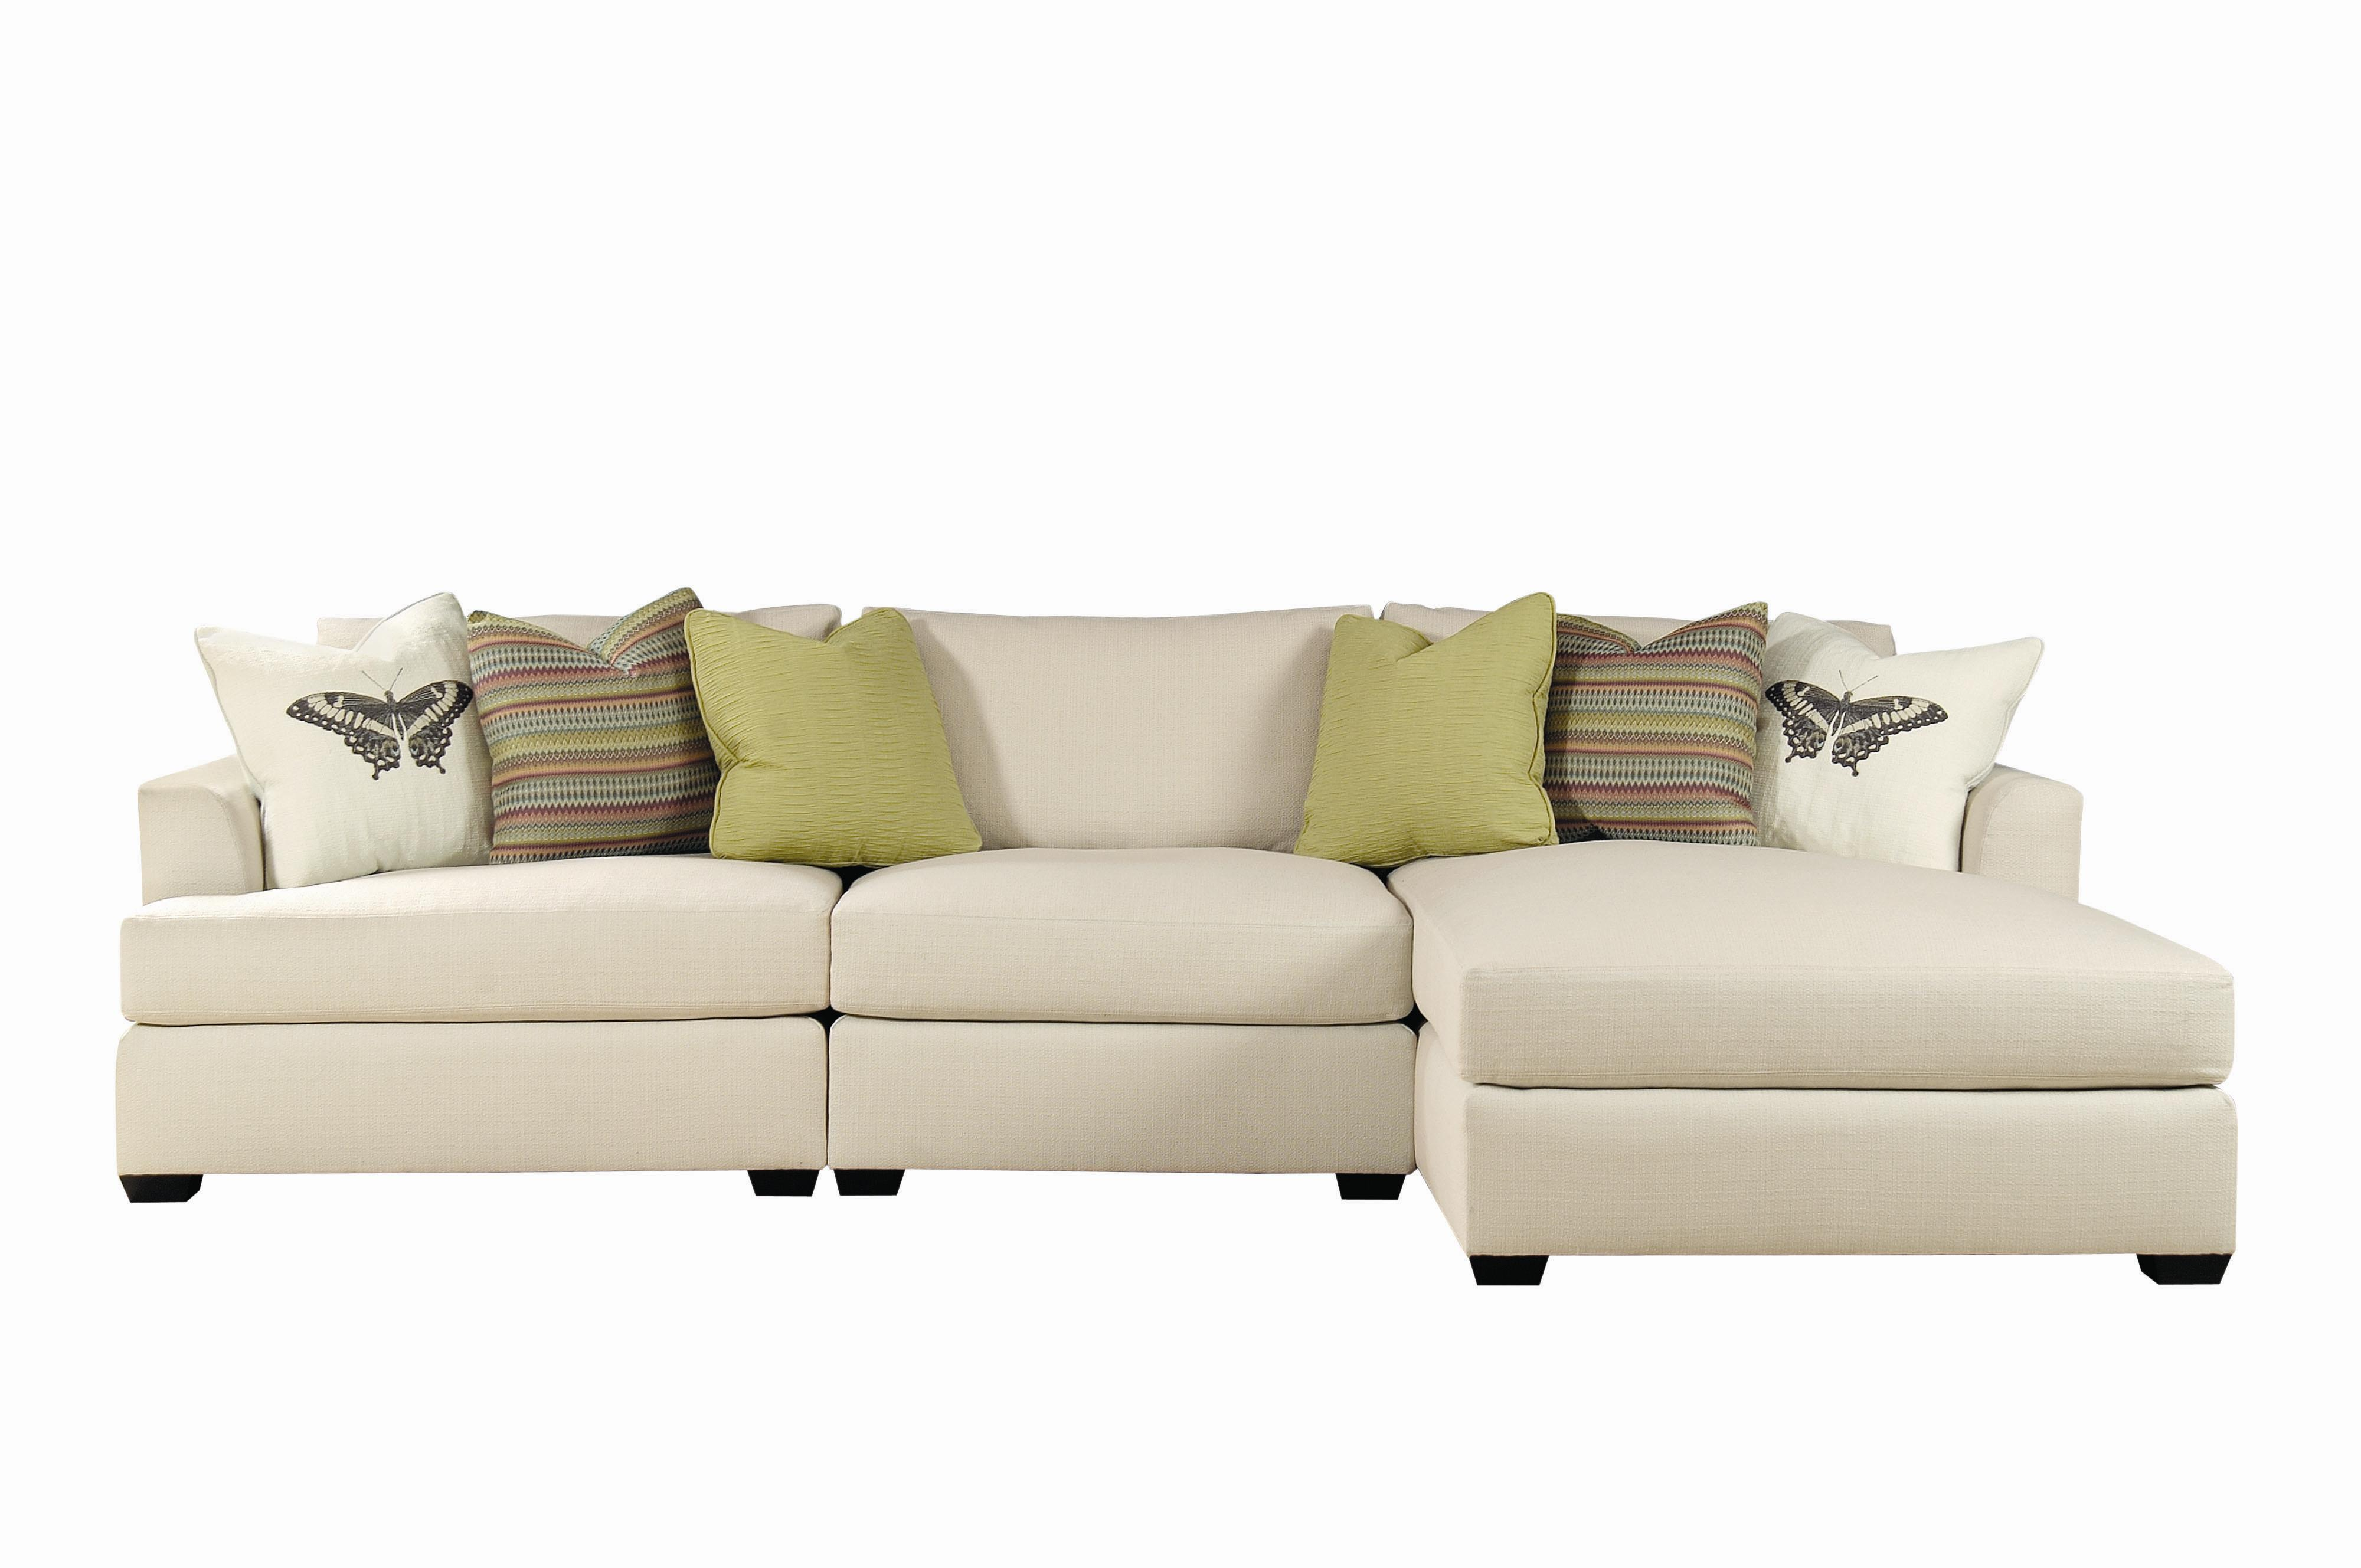 Bernhardt adriana sectional sofa with chaise lounger for Bernhardt chaise lounge